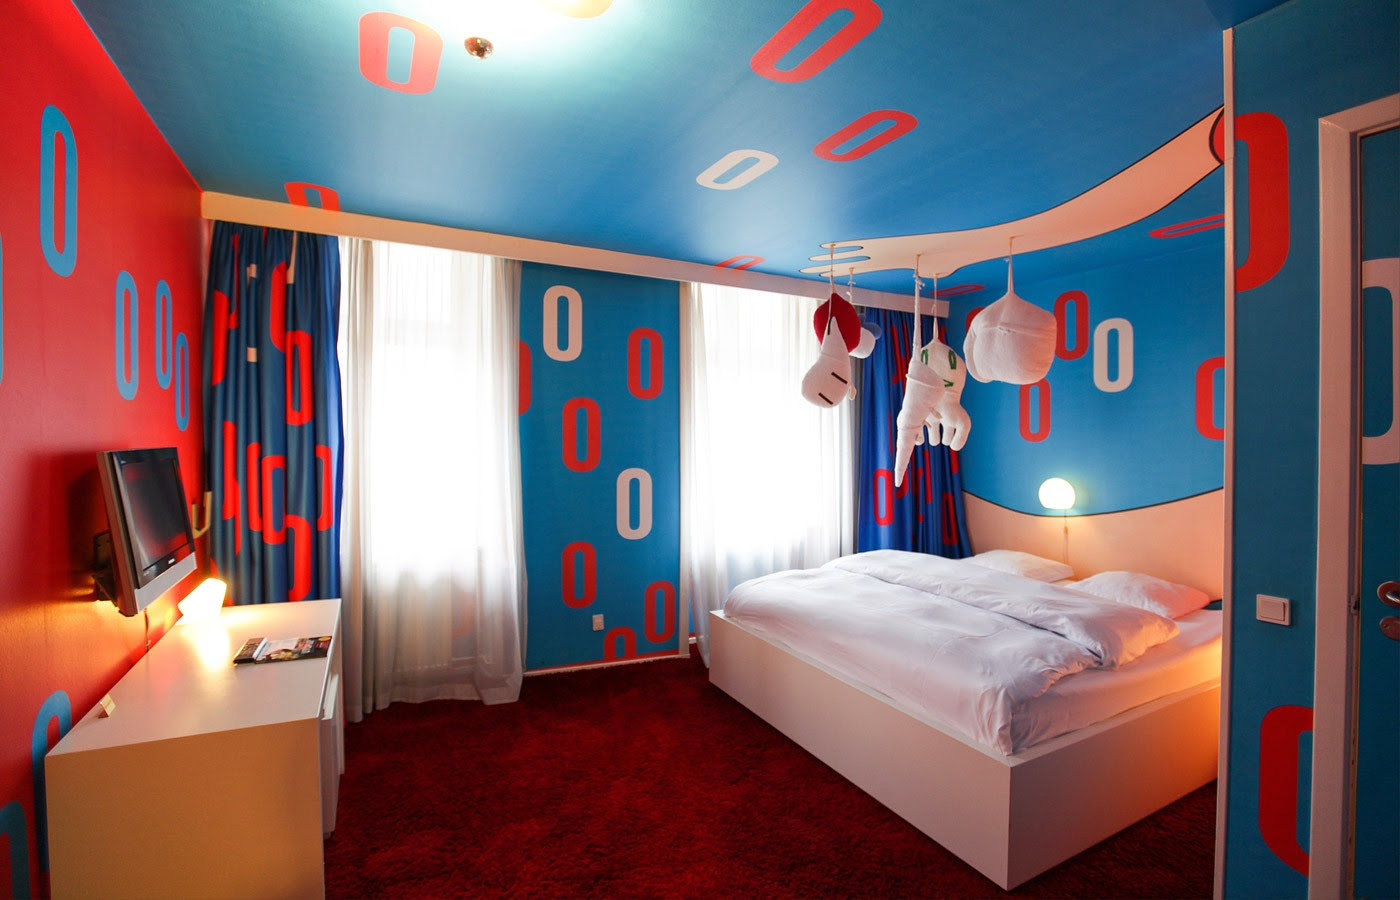 10-Hotel-Fox-Project-Fox-Room Designs-www-designstack-co